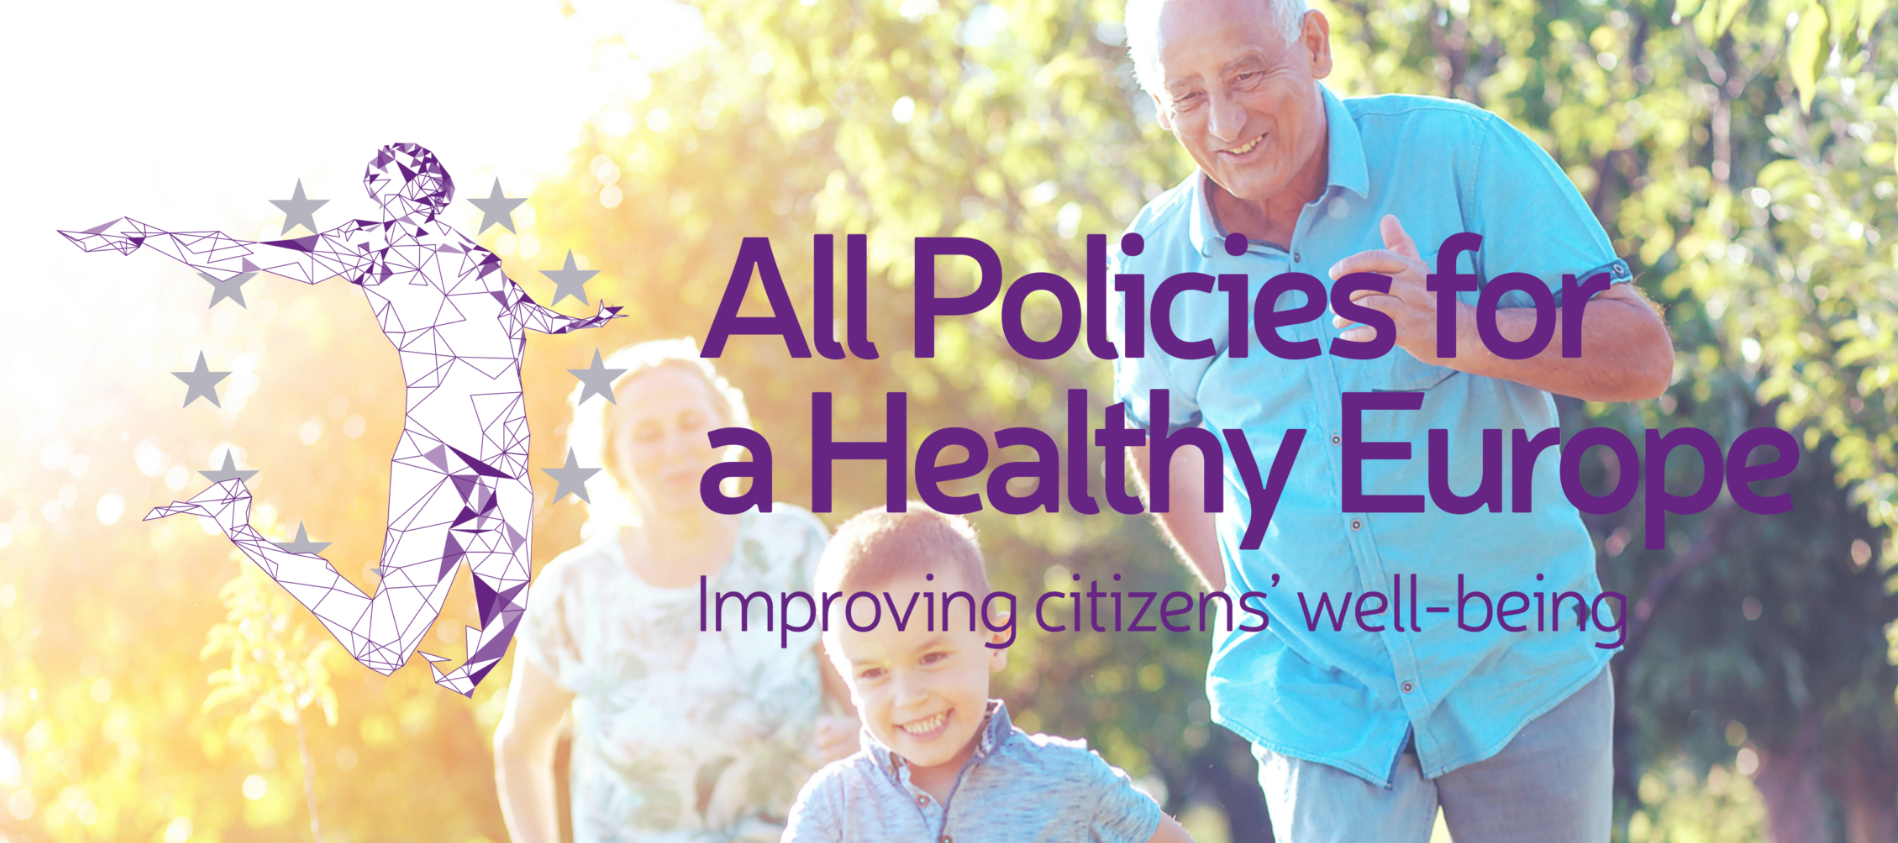 All Policies for a Healthy Europe